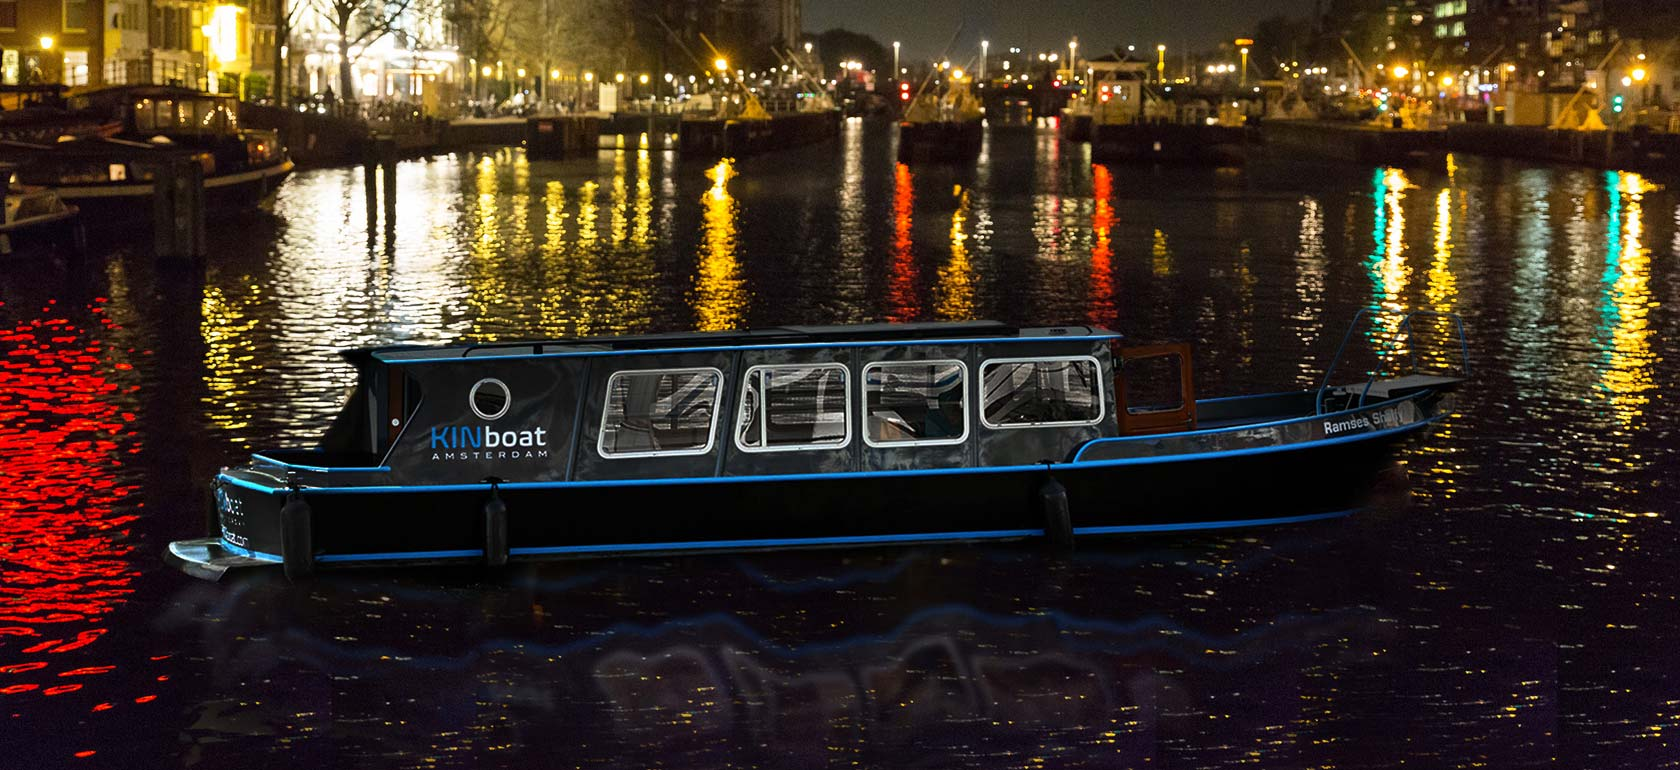 Amsterdam light festival (small private boats)